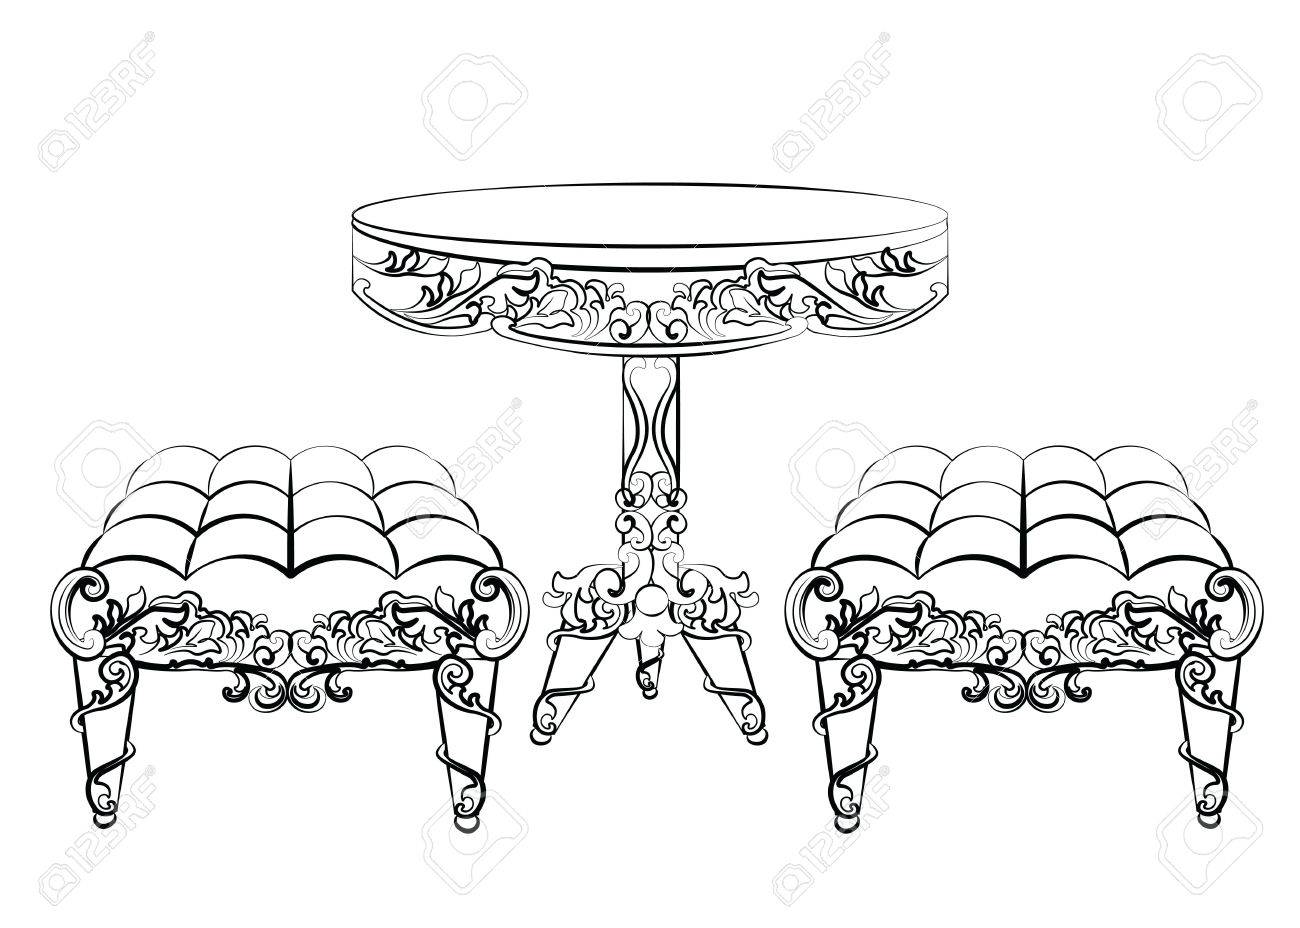 Rococo furniture sketch - Furniture In Classic Rococo Style Ornament Vector Sketch Stock Vector 58421870